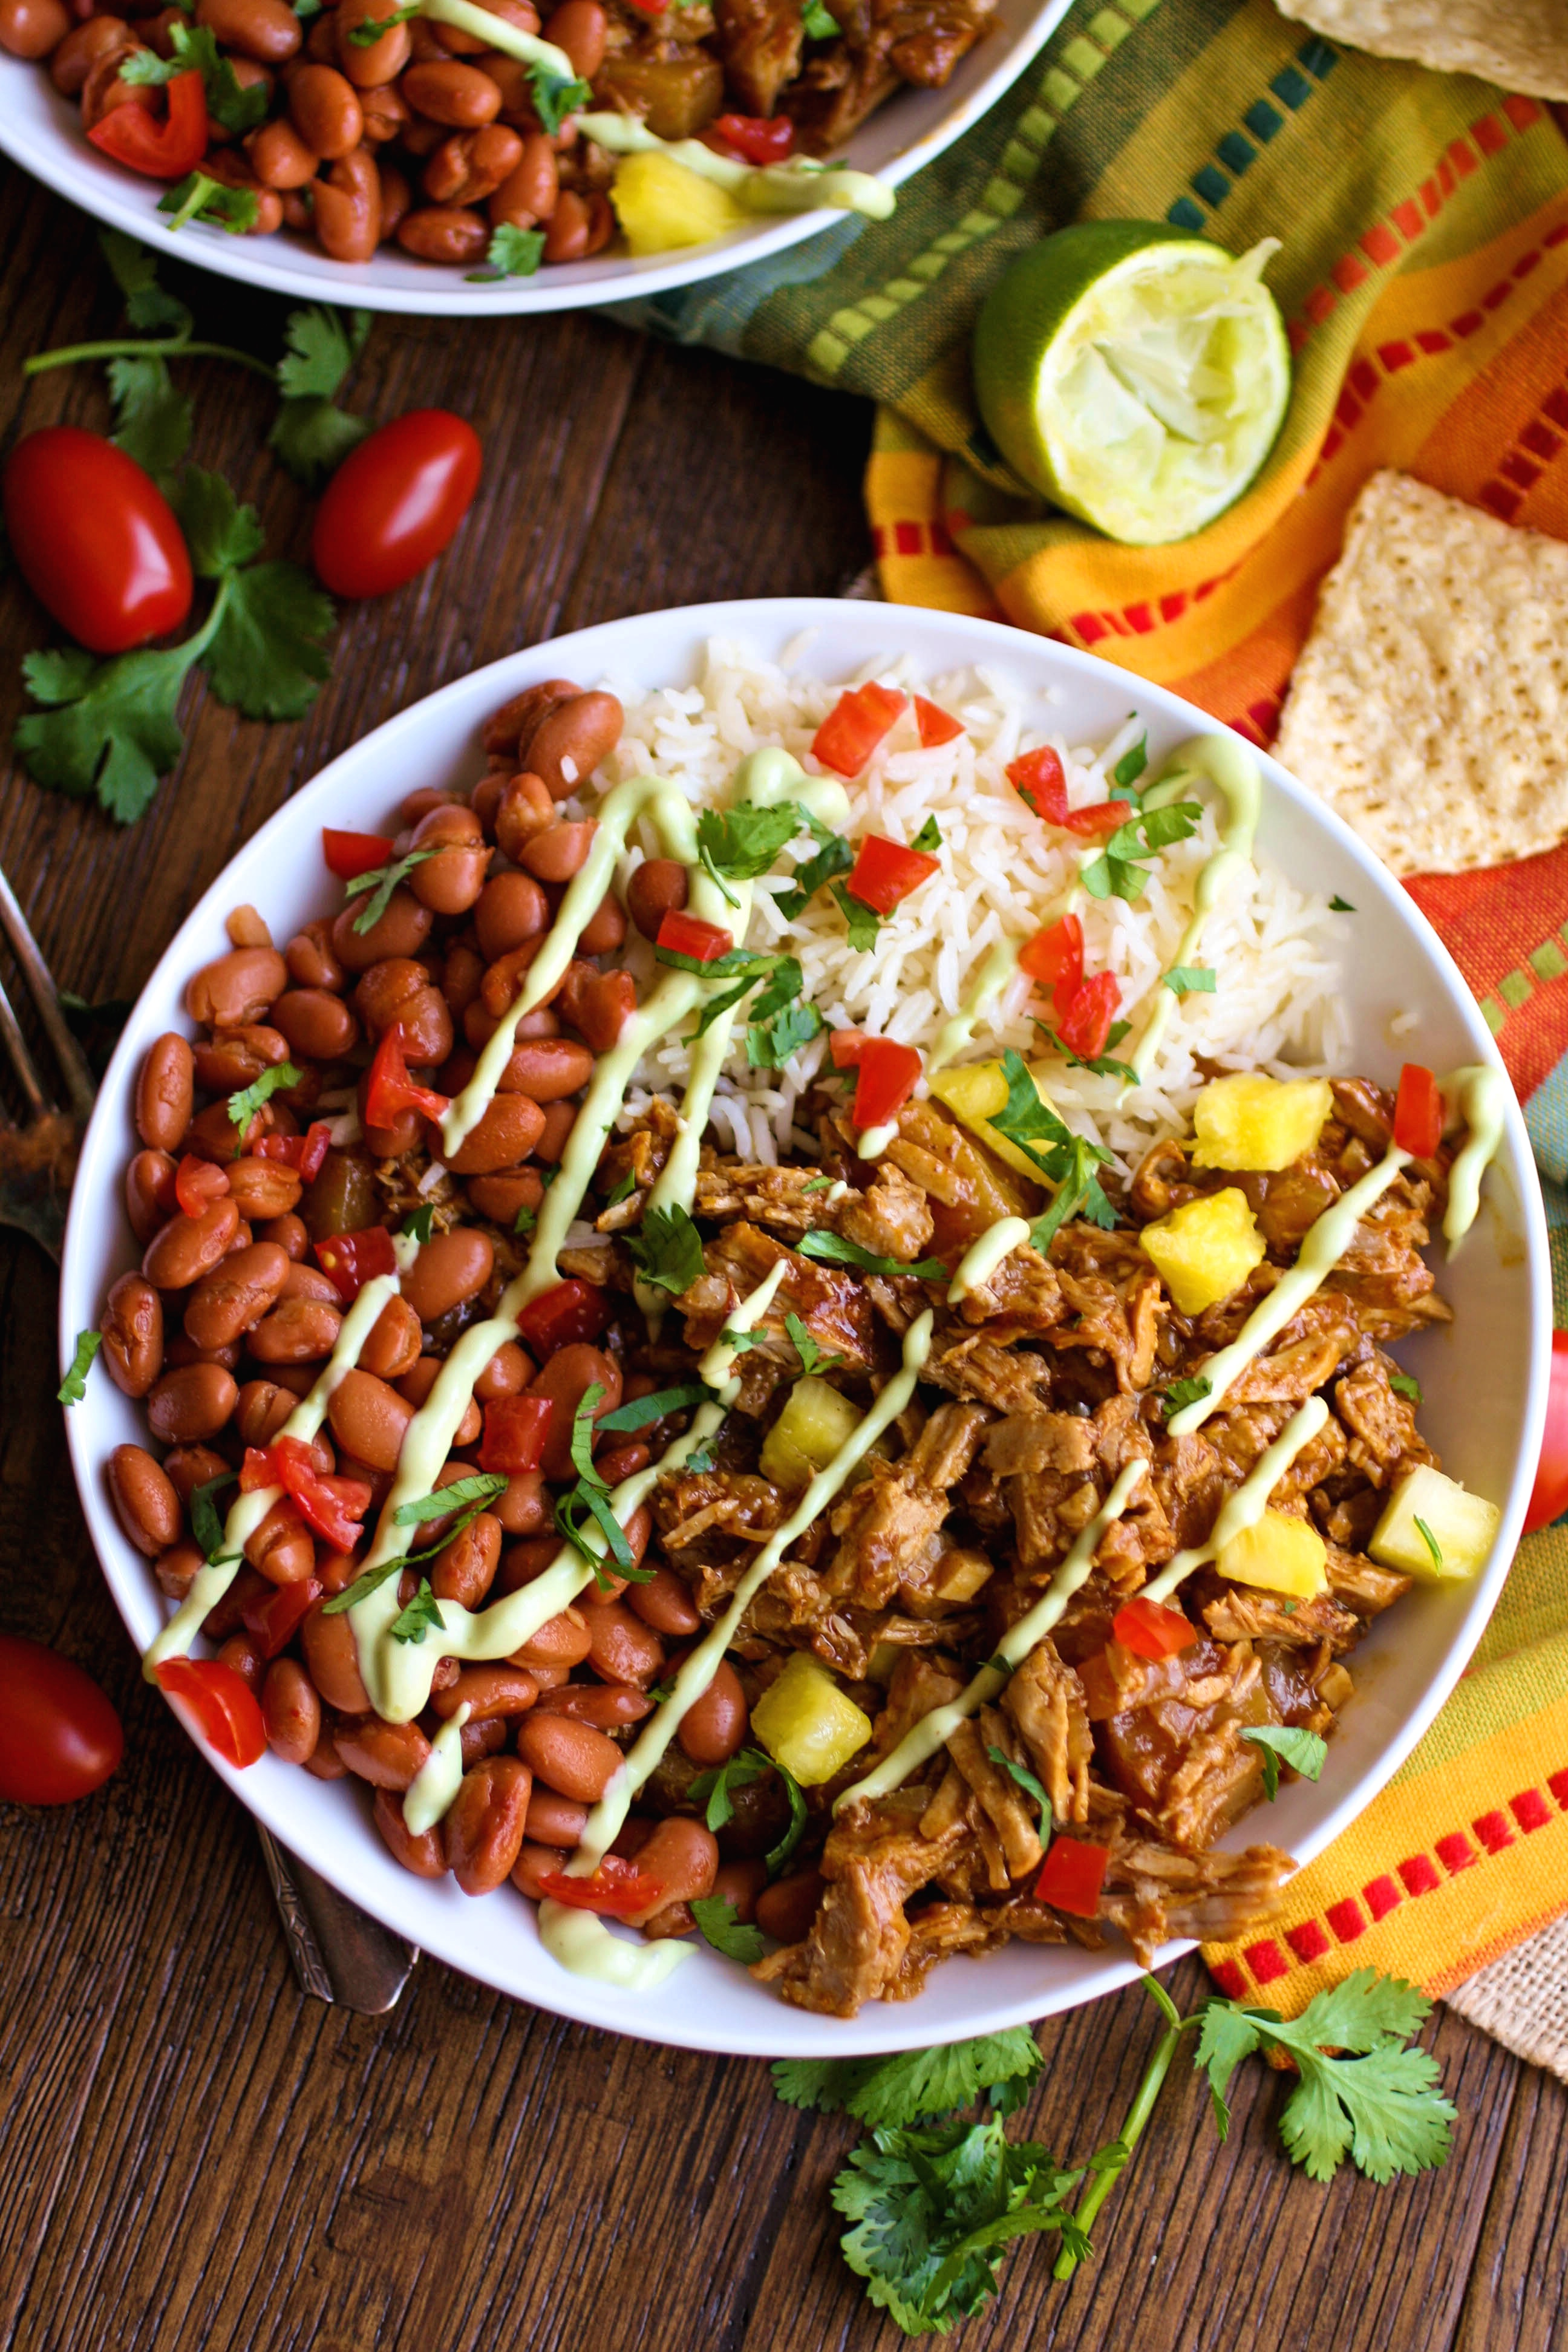 Pork al pastor bowls are a Mexican-inspired favorite in my house. These bowls forgo the taco shells, but you won't miss them!